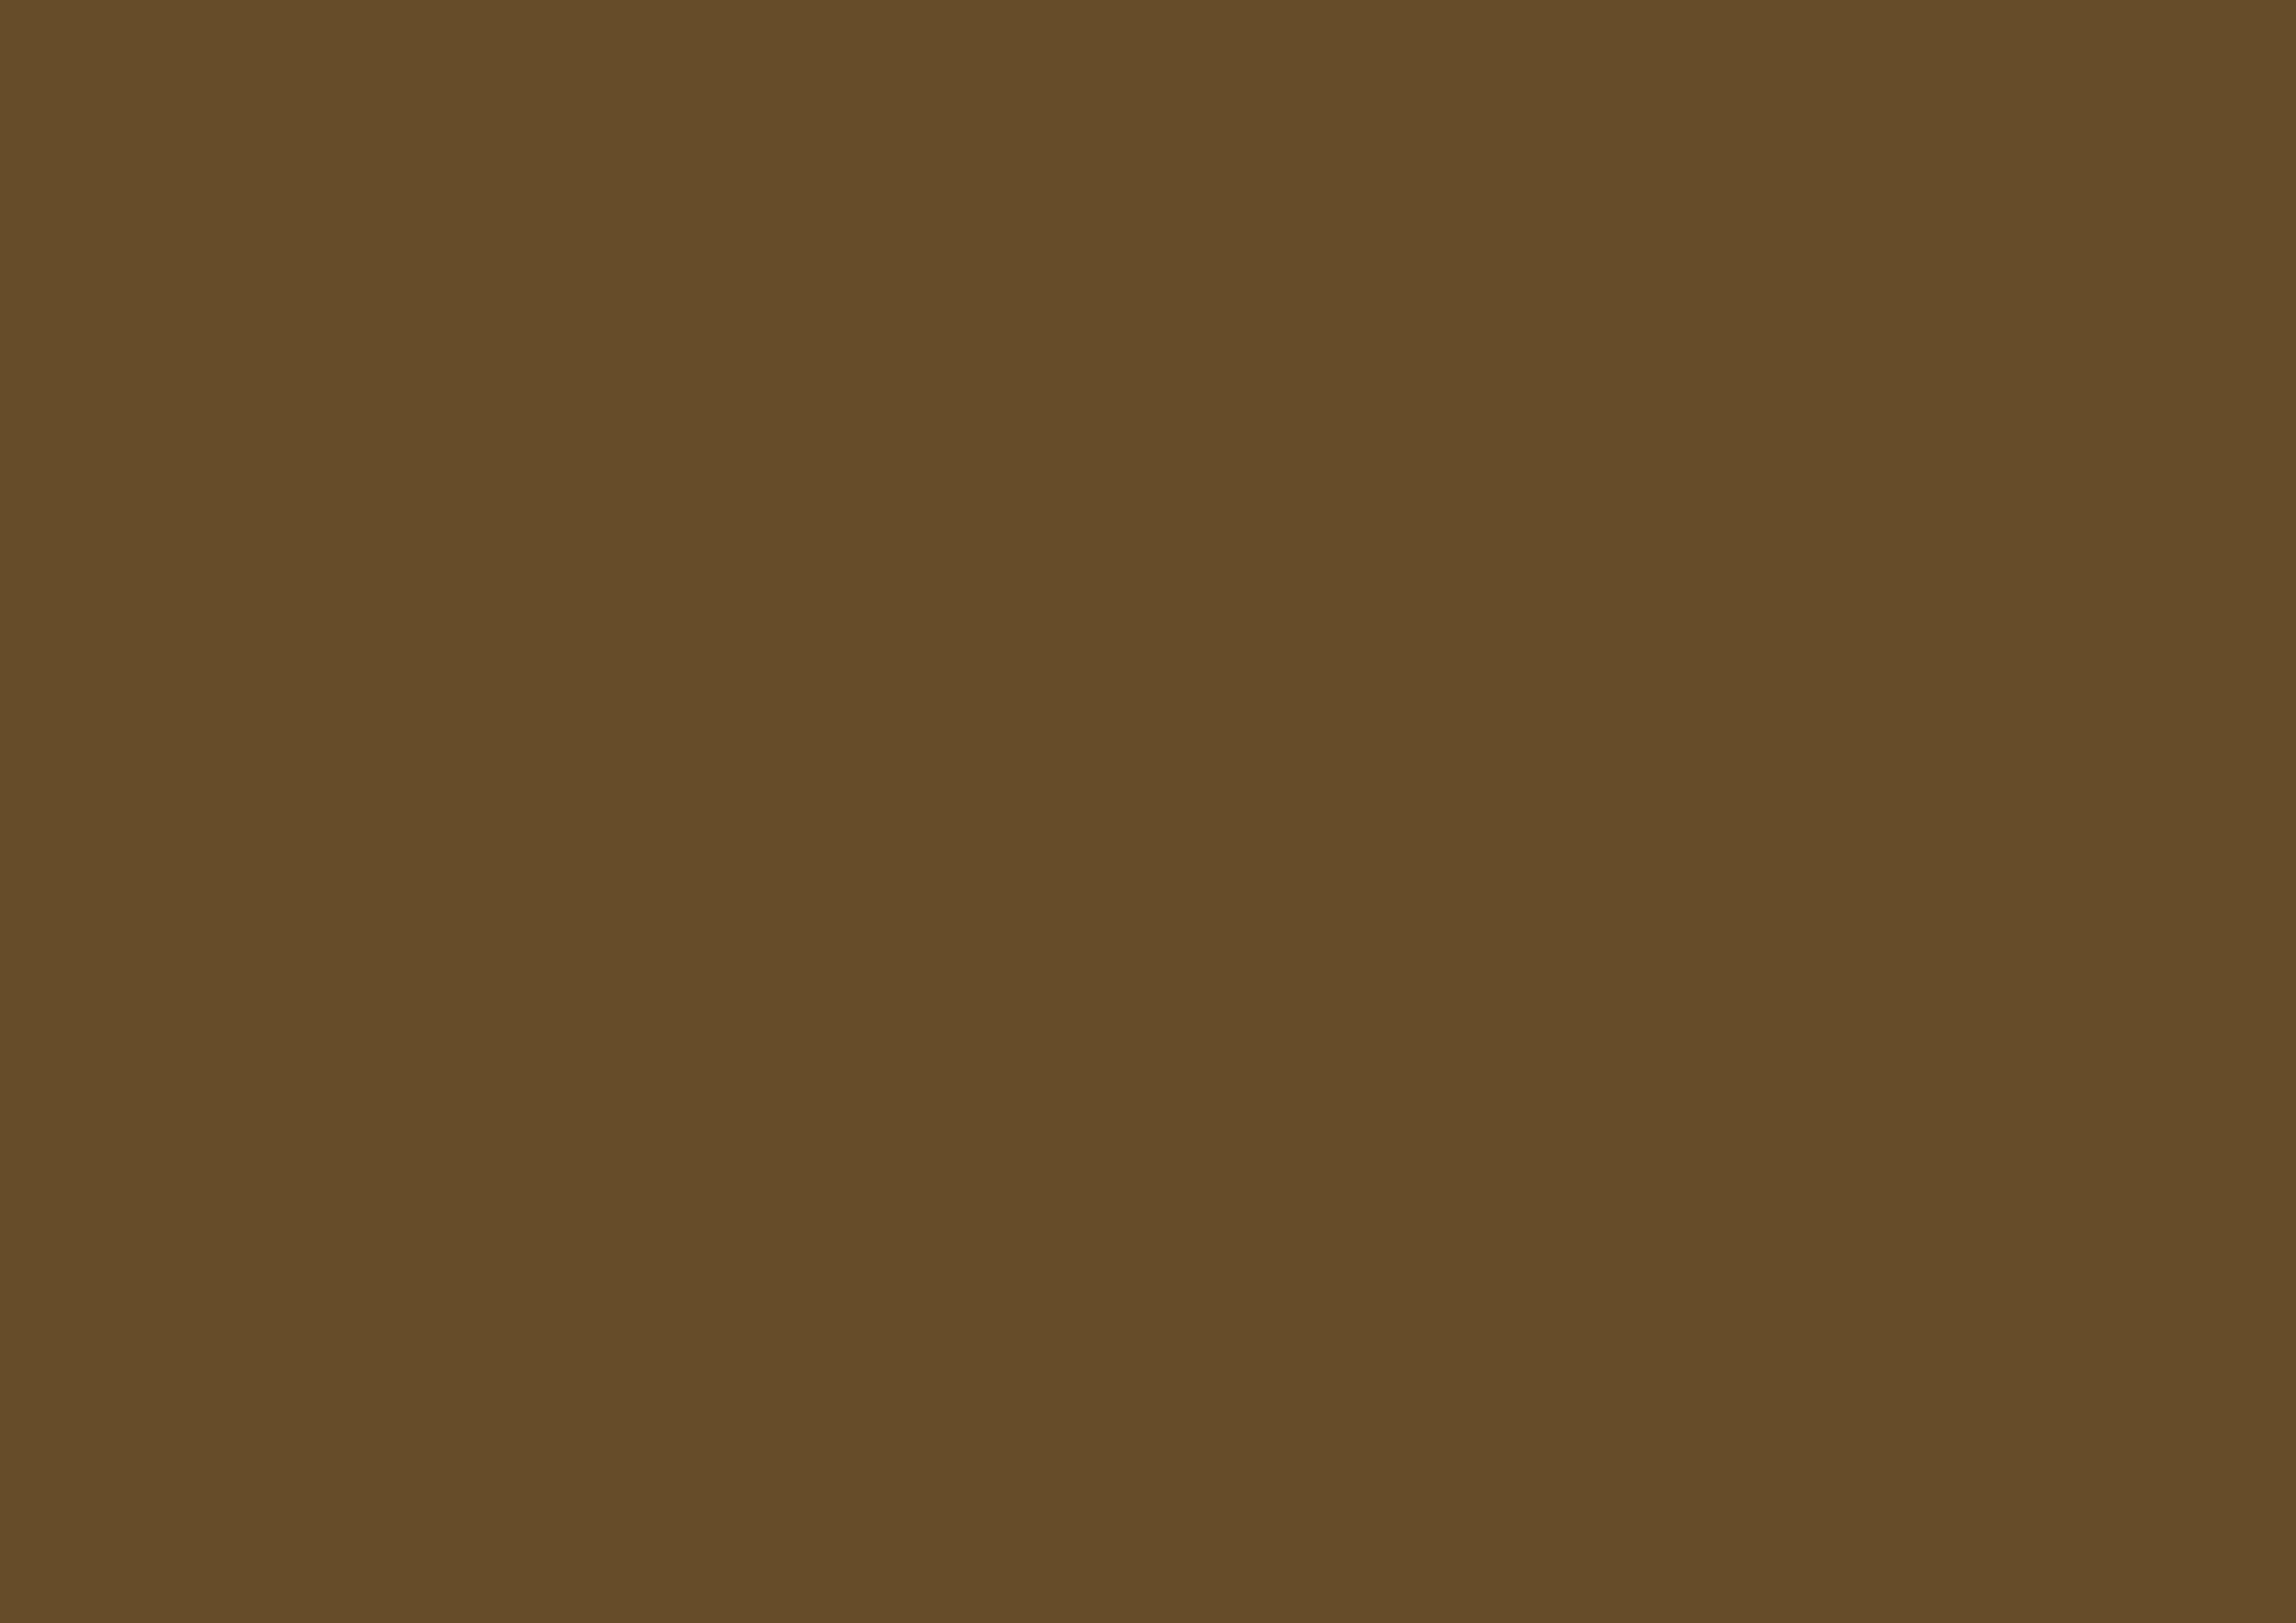 3508x2480 Donkey Brown Solid Color Background